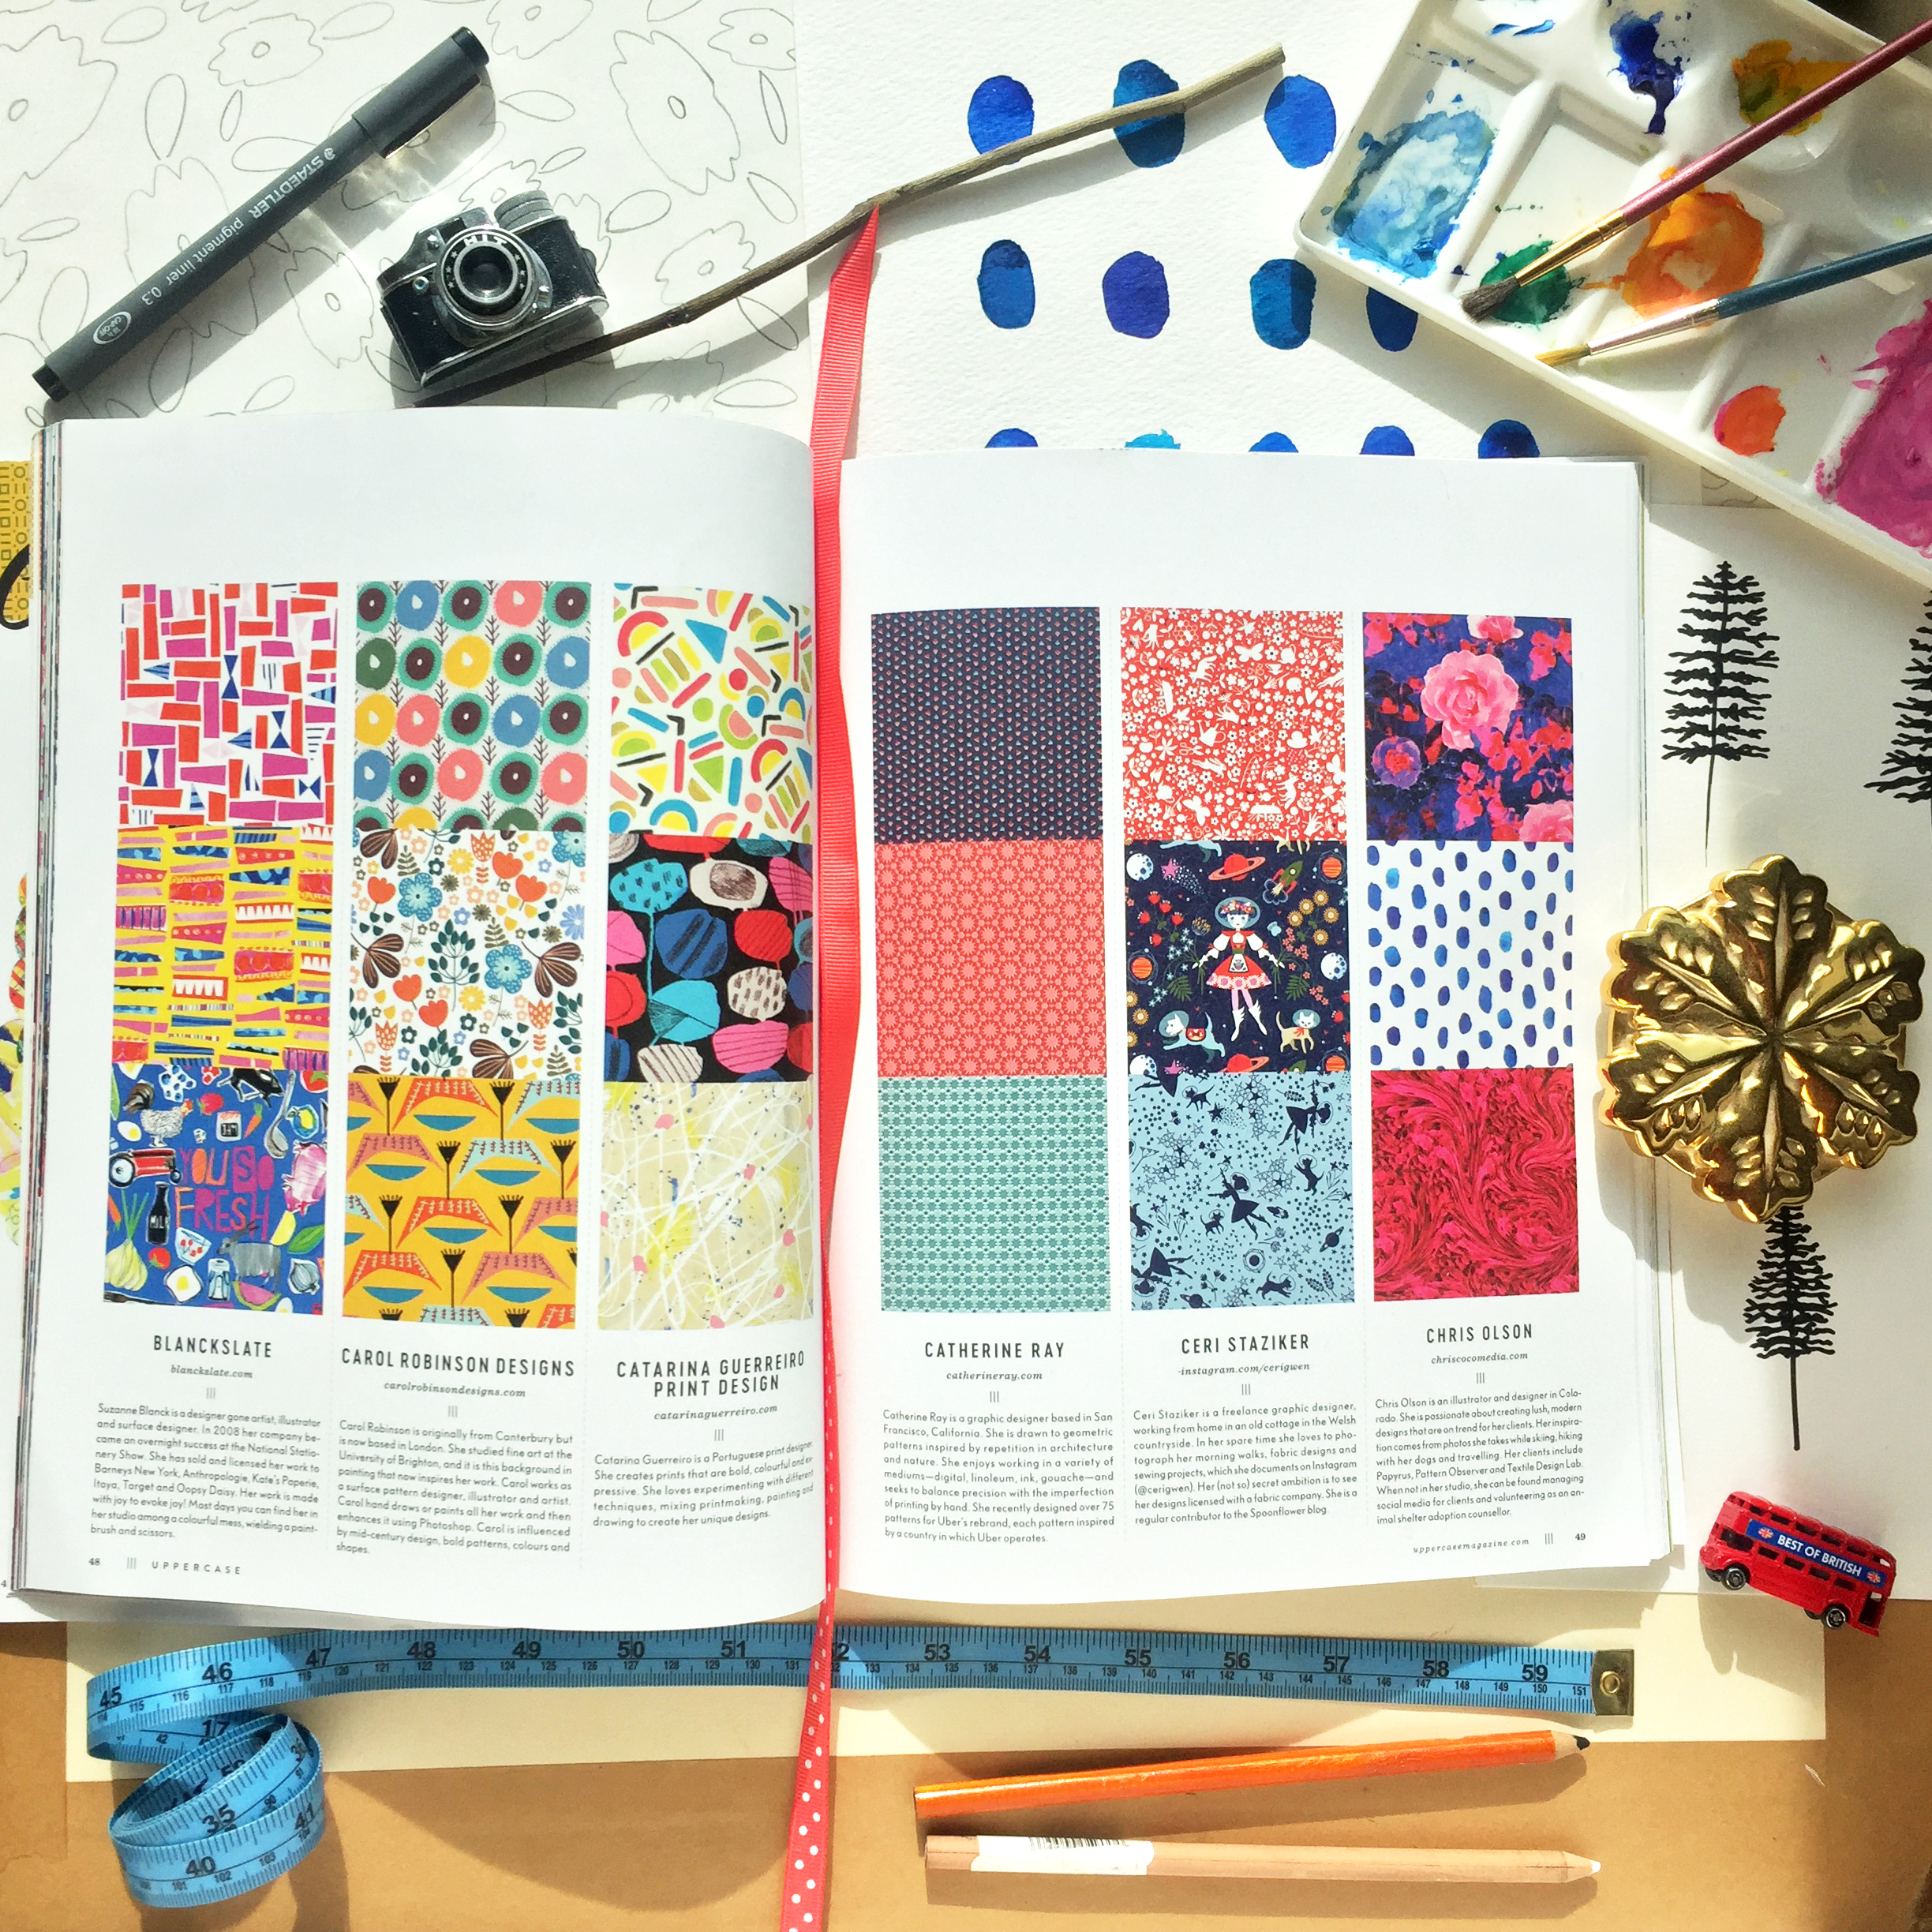 Chris Olson was recently selected to be featured in  Surface Pattern Design Guide  at UPPERCASE Magazine ( Issue no. 32).